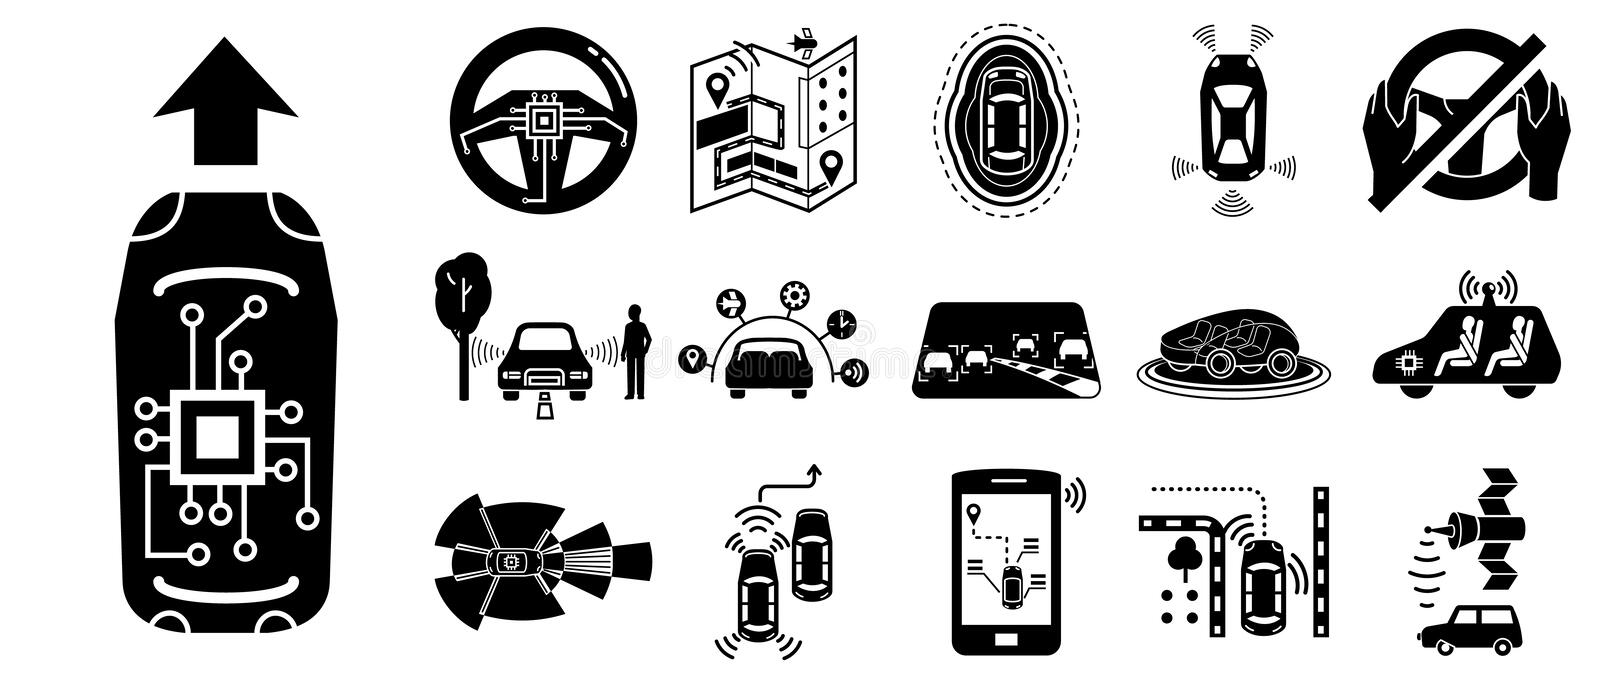 Driverless car icons set, simple style vector illustration